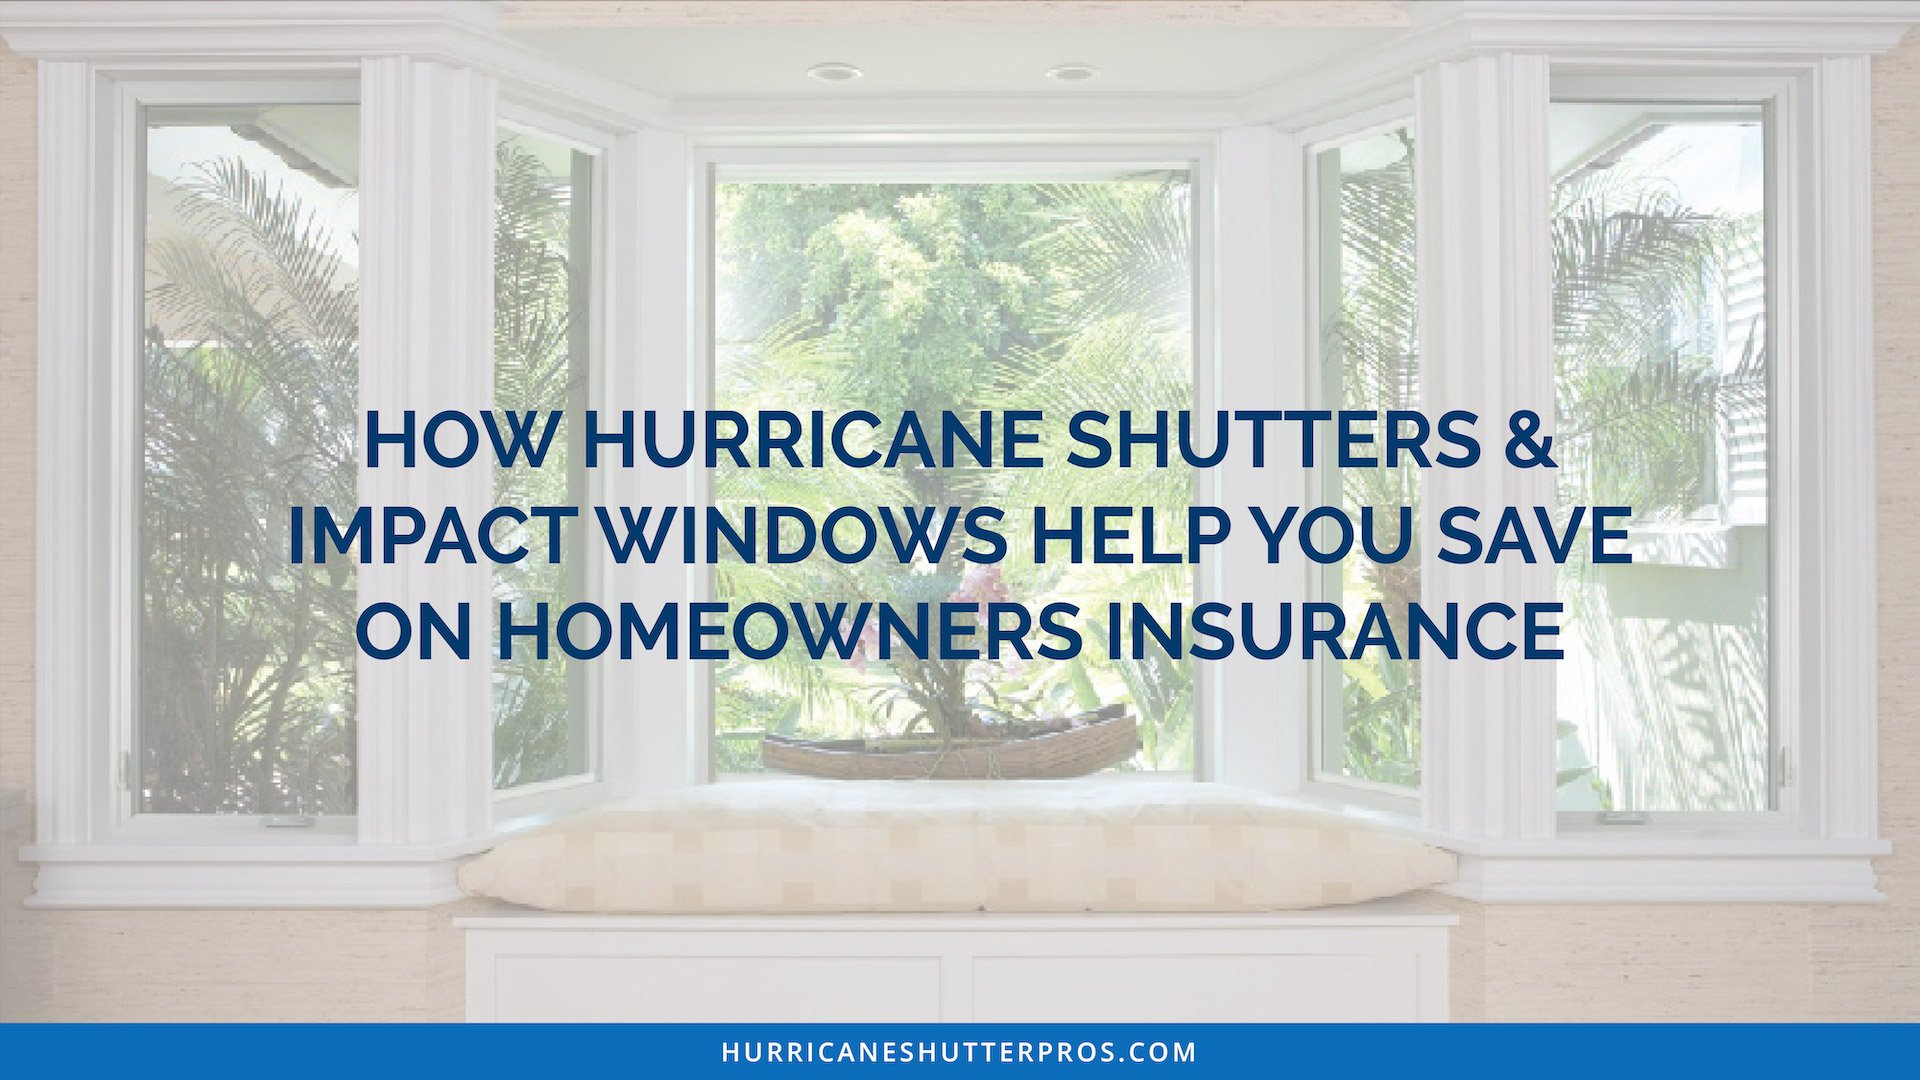 How Hurricane Shutters and Impact Windows Help You Save on Homeowners Insurance